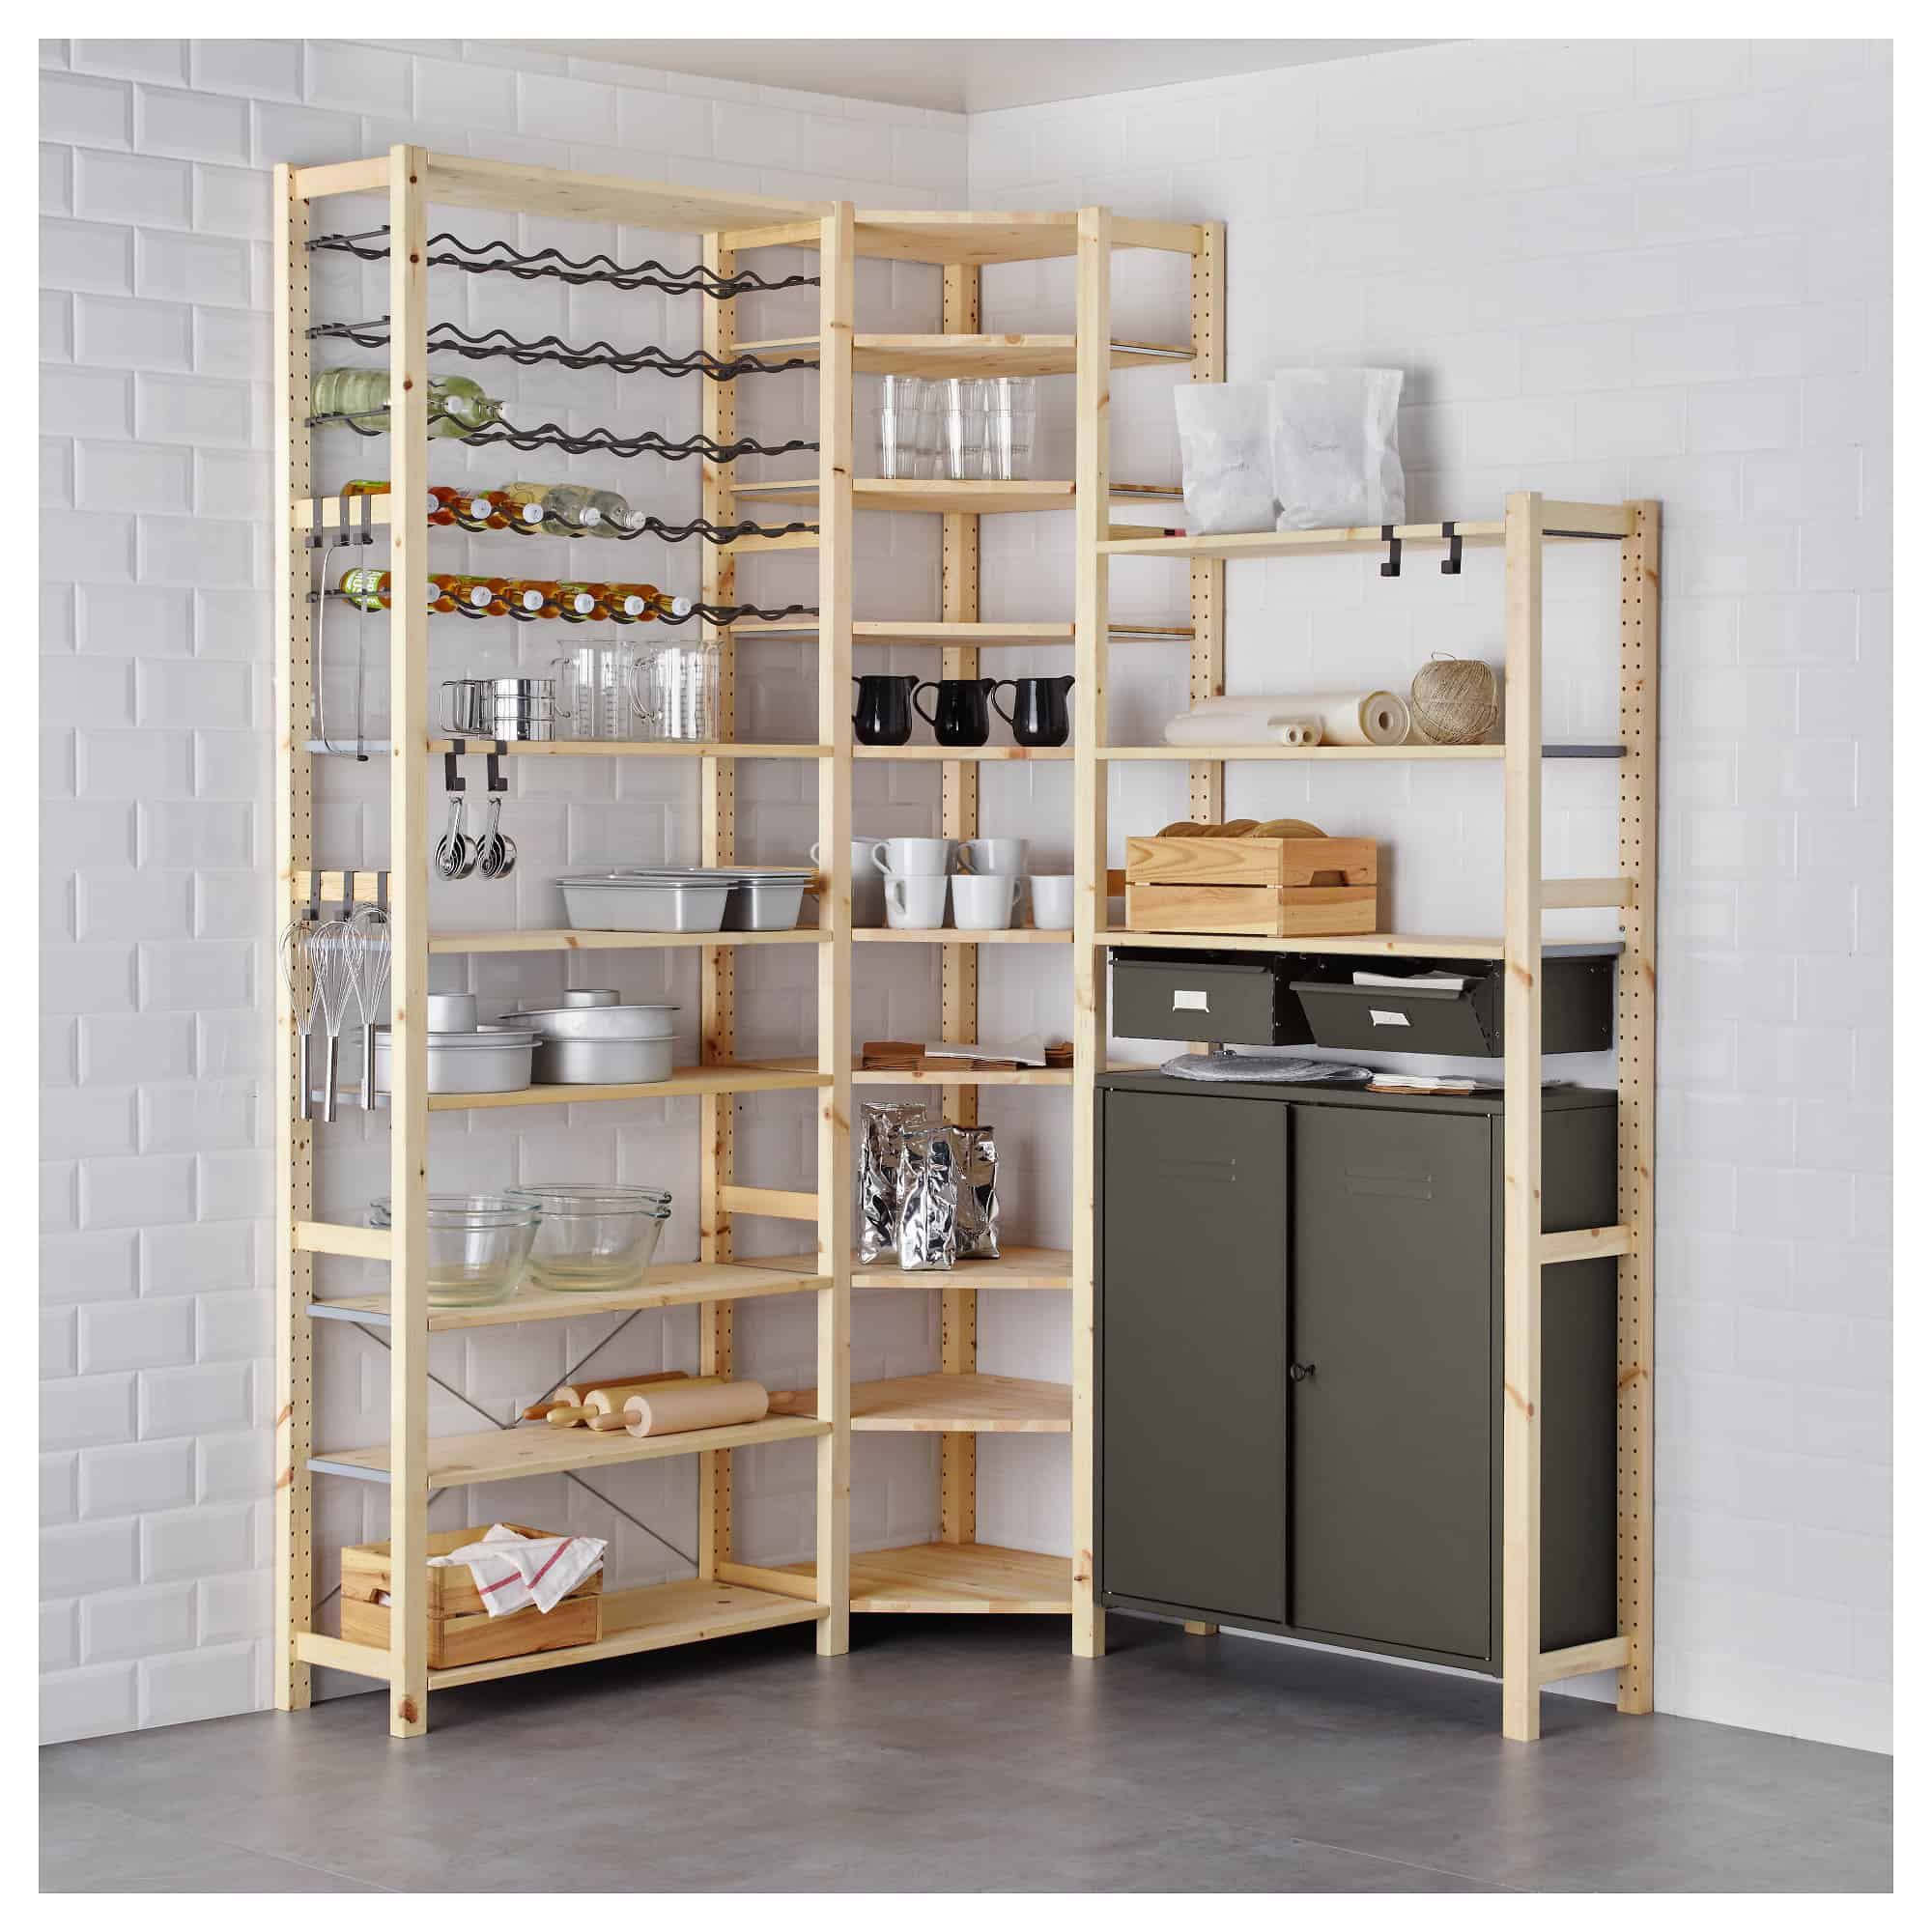 ivar-3-sections-shelves-cabinet